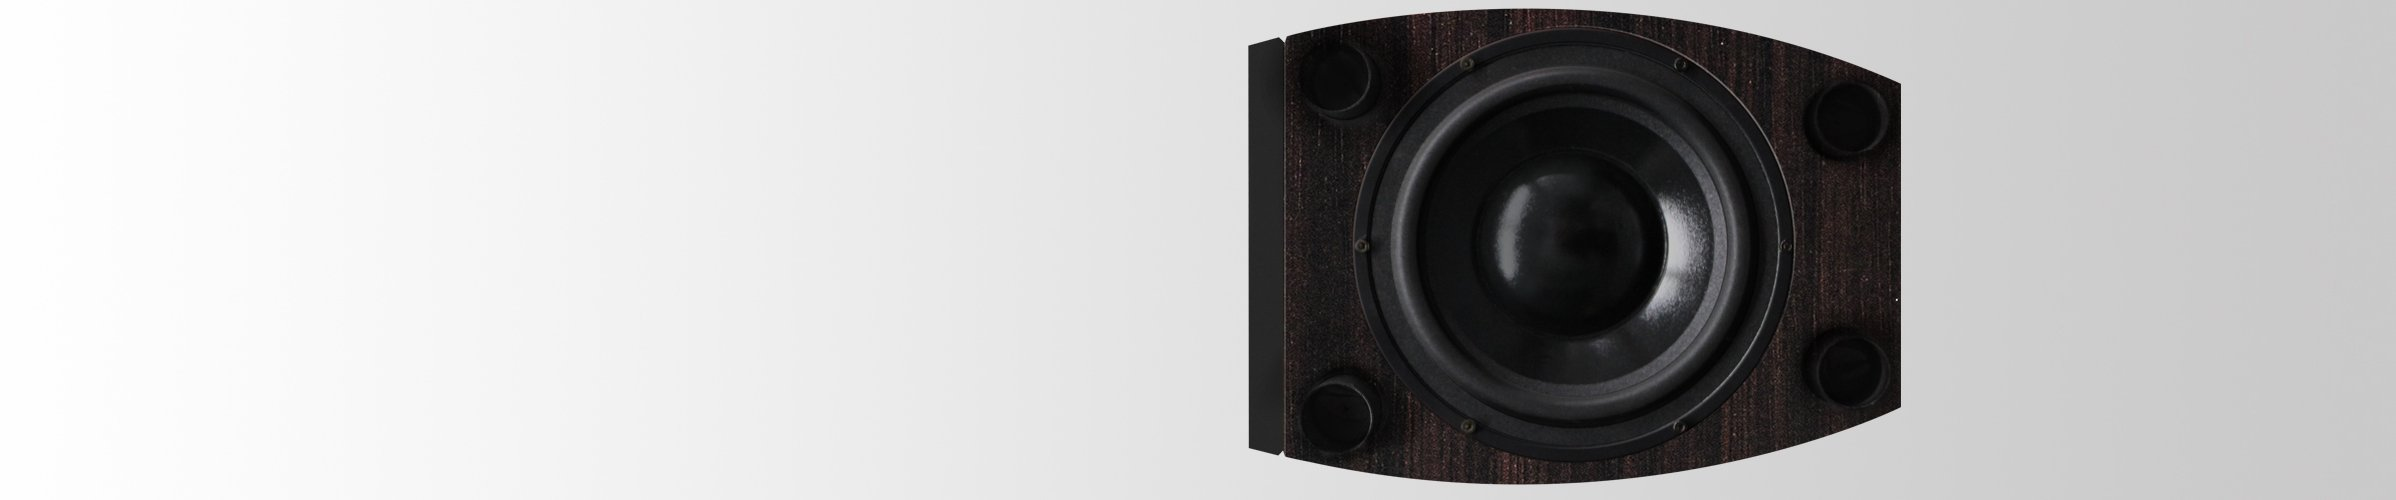 XLHTB-DW Reference Home Theater Speaker System Subwoofer